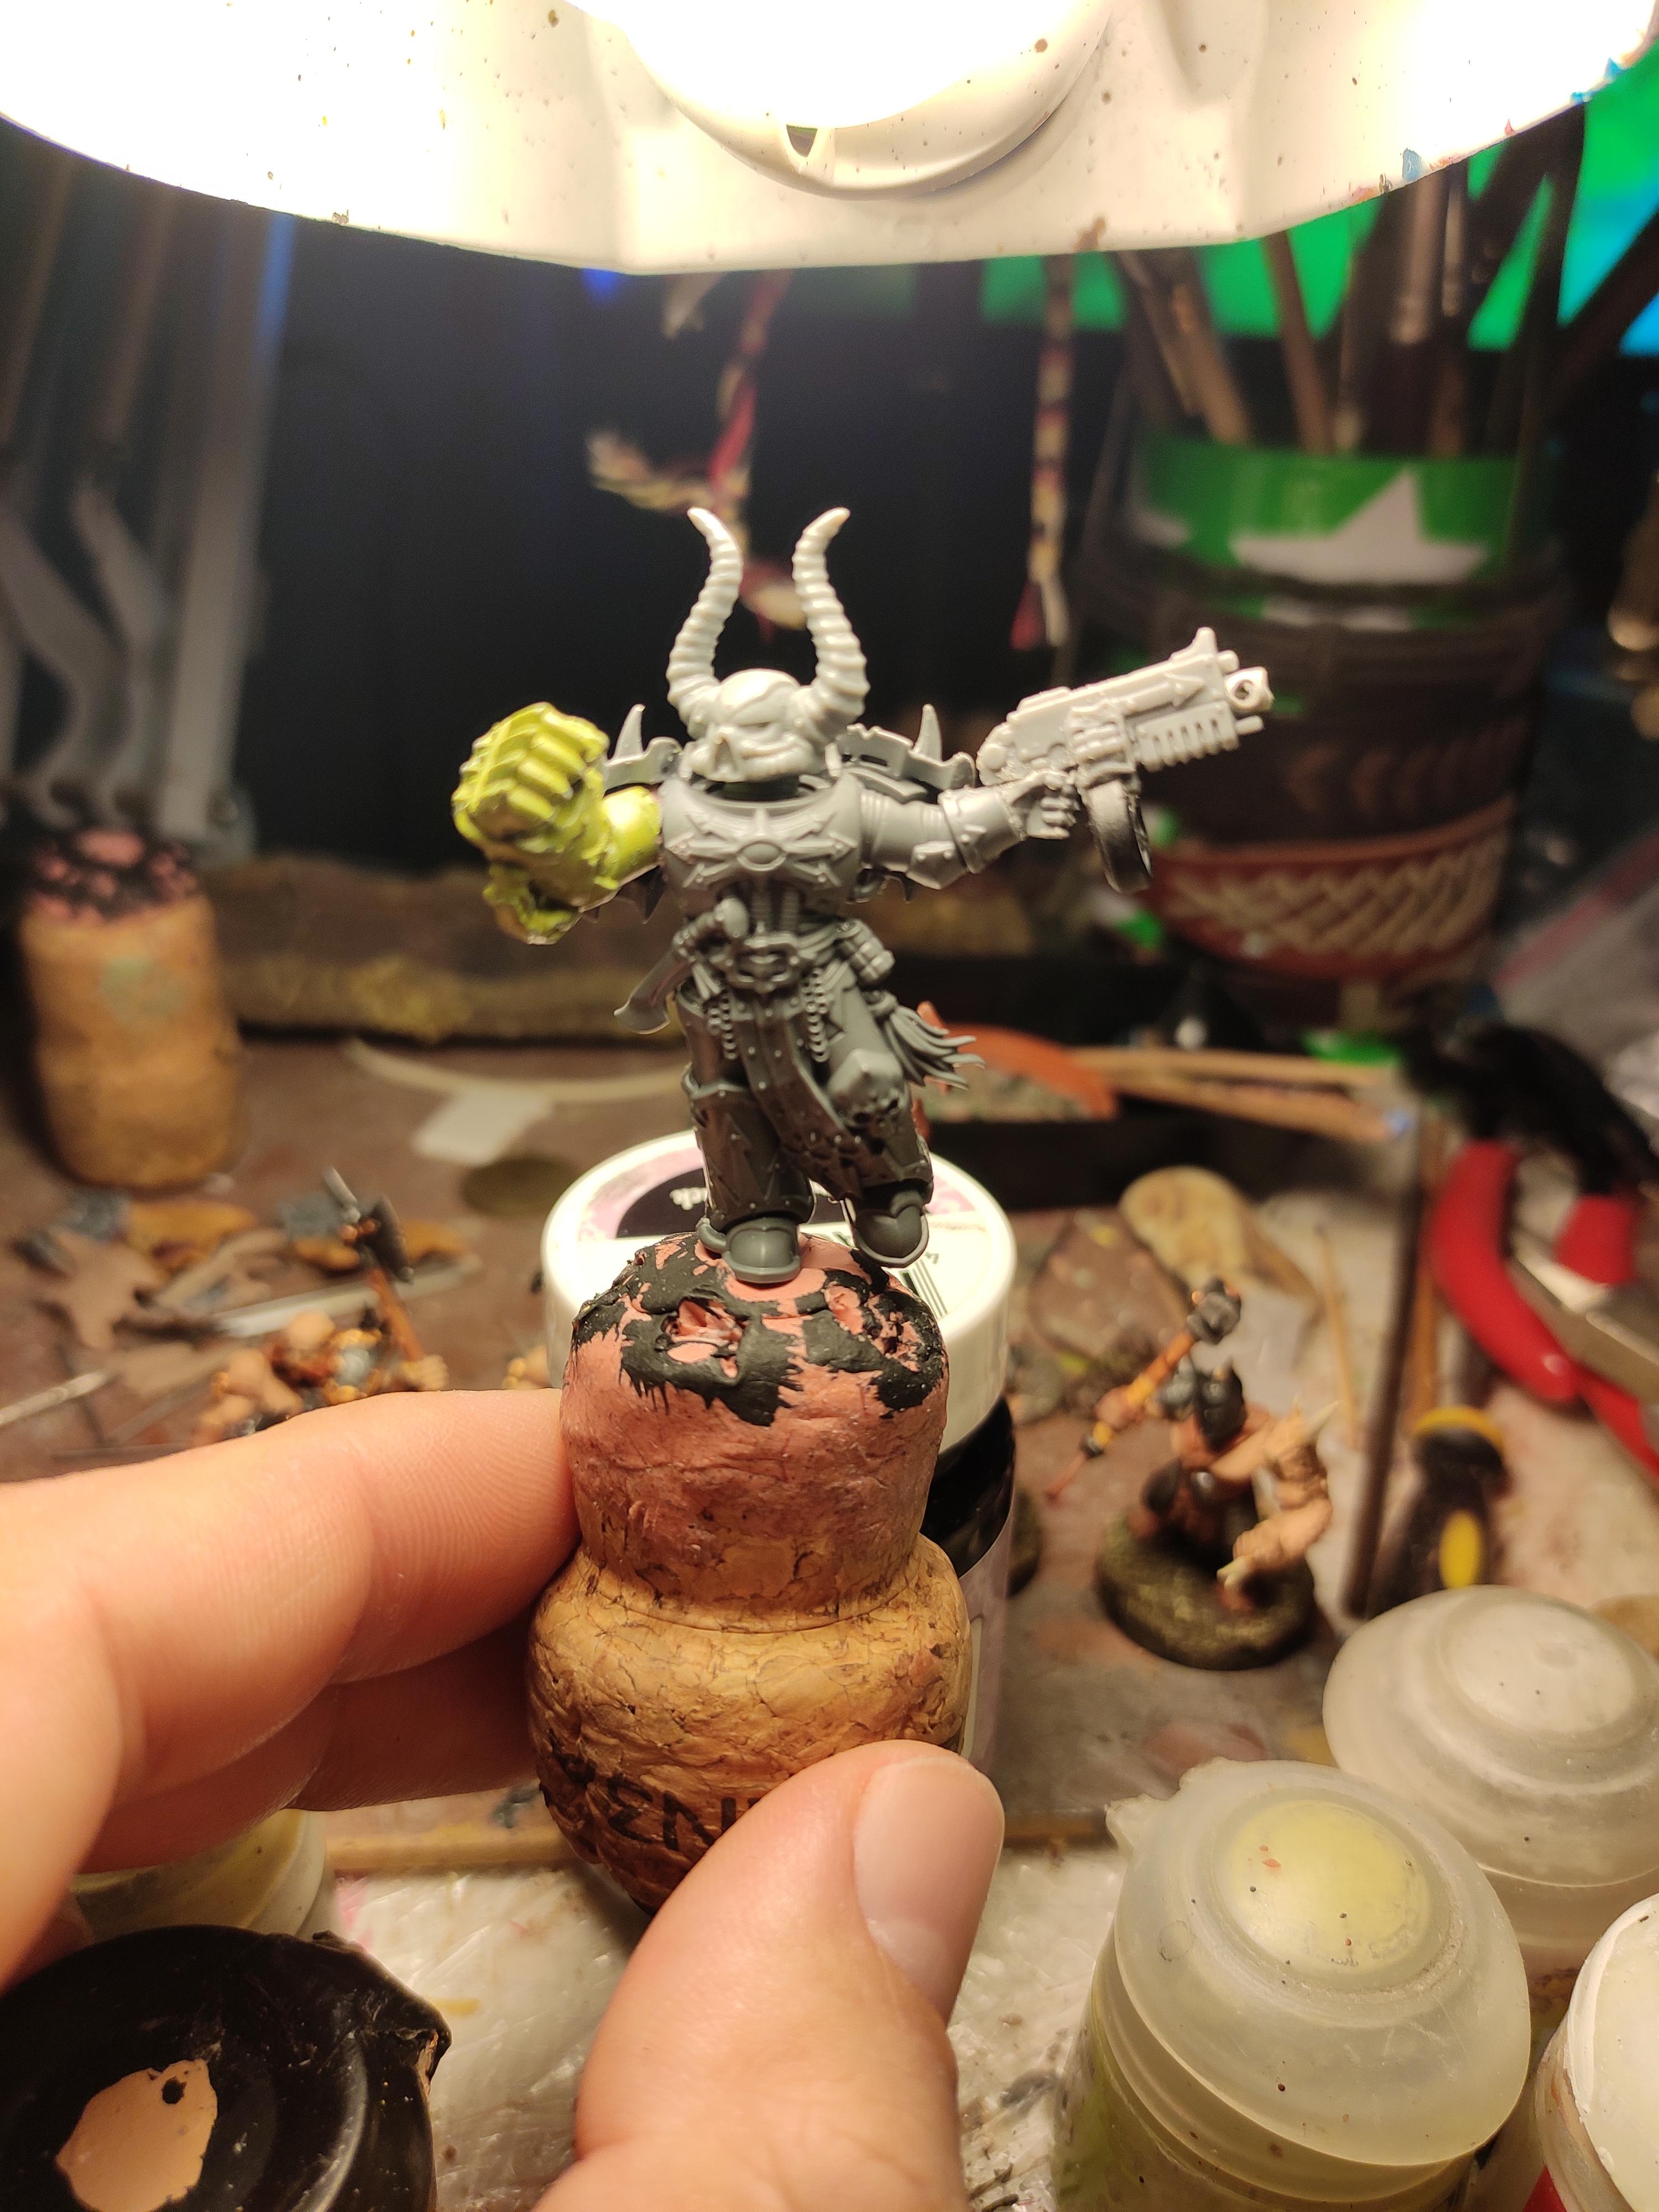 Blurred Photo, Bolter, Chaos, Chaos Space Marines, Conversion, Heresy, Heretic Astartes, Kitbash, Power Fist, Regiment, Shadowspear, Traitor Legions, Warhammer 40,000, Work In Progress